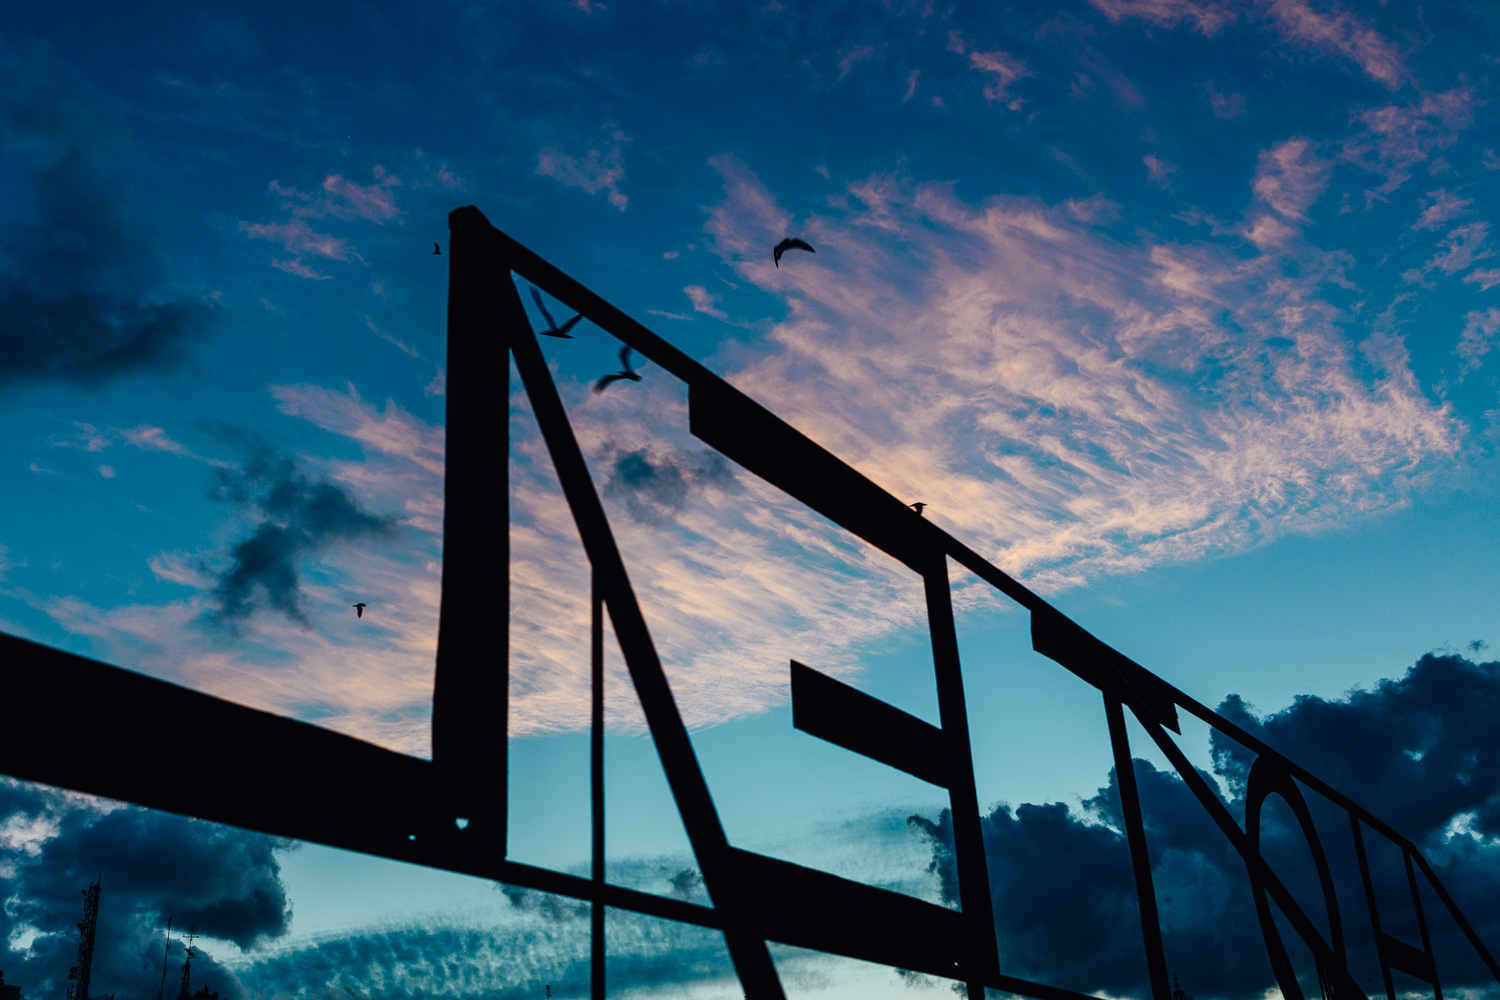 Blue-Sky-Cloud-Sunset-Hotel-Silhouette-Durazo-Photography.jpg